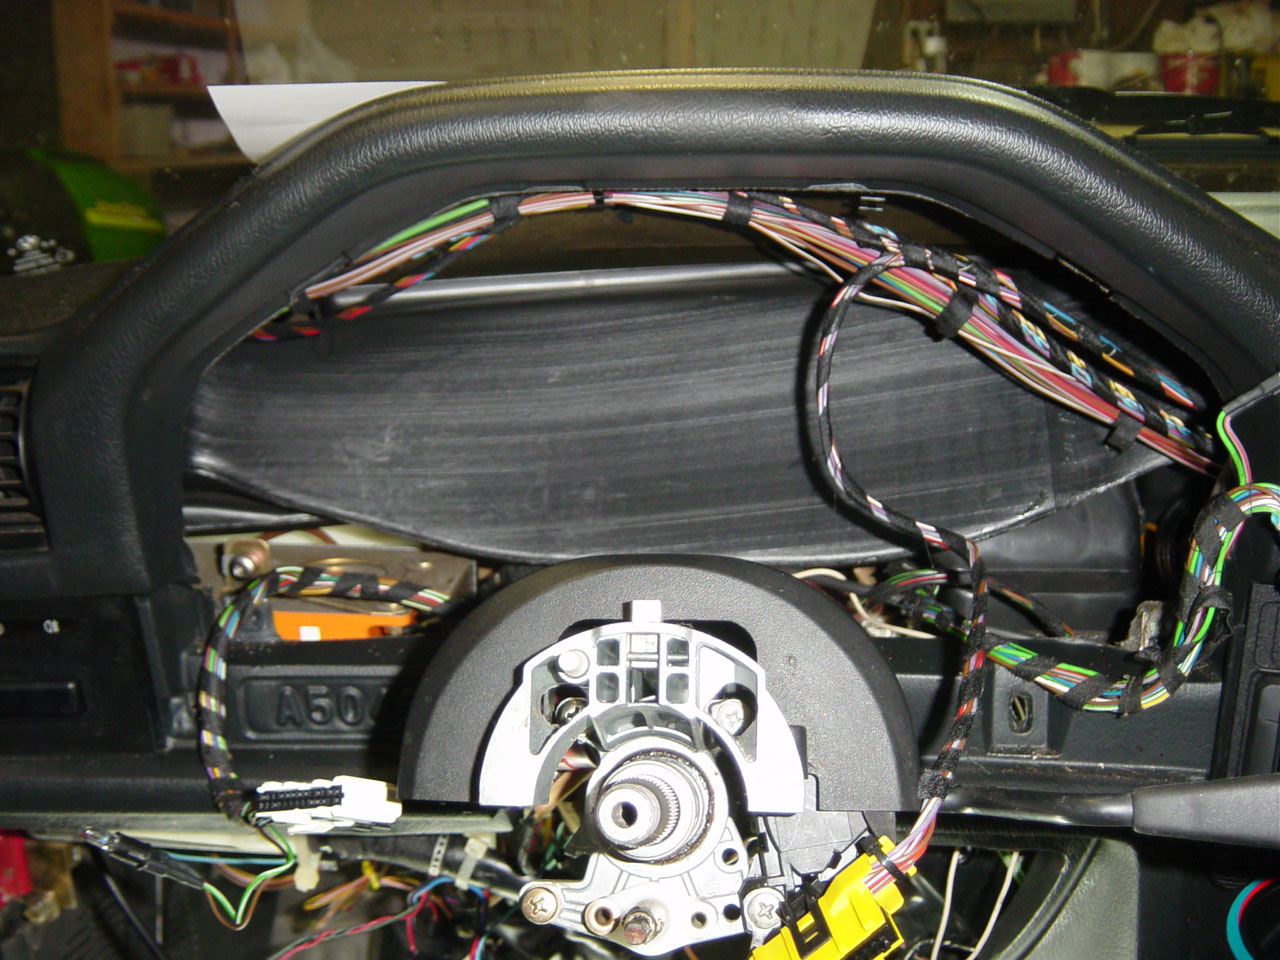 1991 Bmw 318i E30 M42 On Board Computer Obc Retrofit By Michael 325i Horn Location With The Instrument Panel Removed Find Yellow Connector This Is Your Mini Wiring Harness You Can Trace It Both Ways To Go And